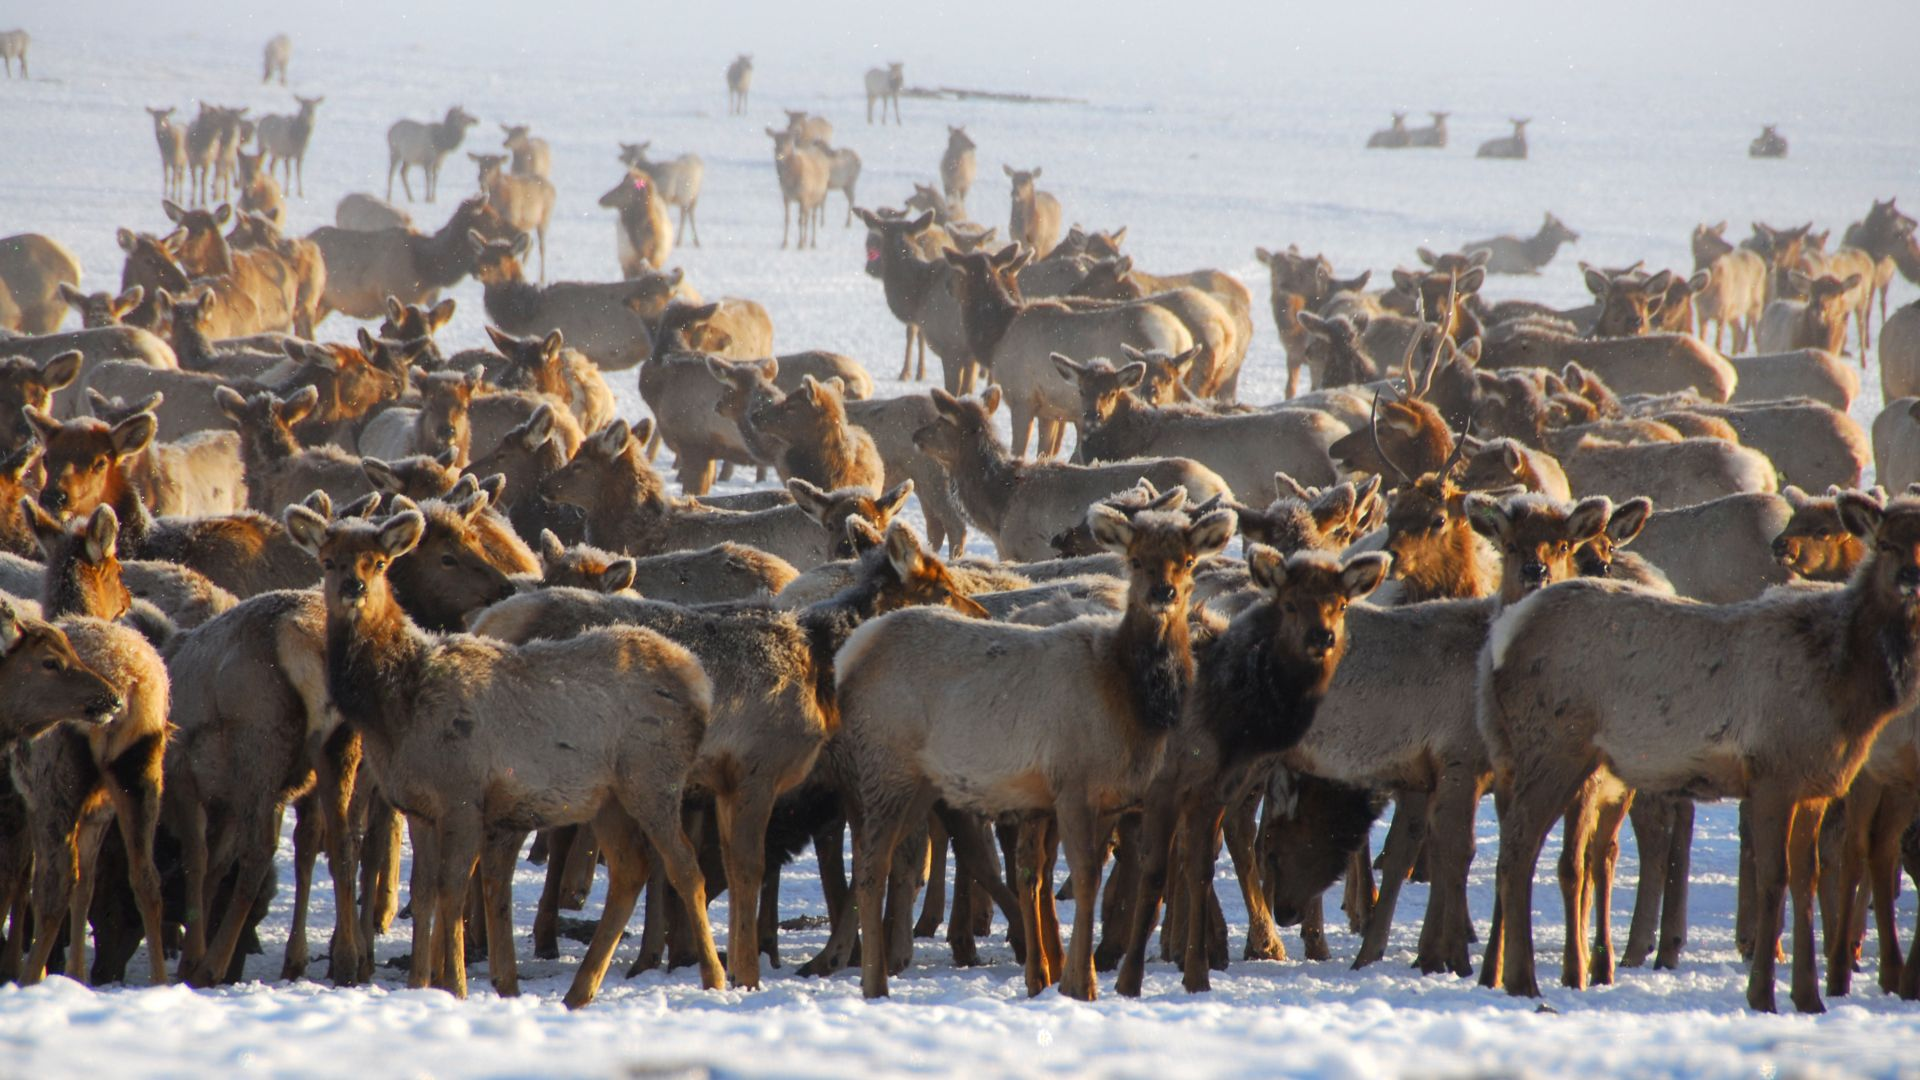 Thousands of elk flock to the low-lying meadows of the National Elk Refuge every winter.